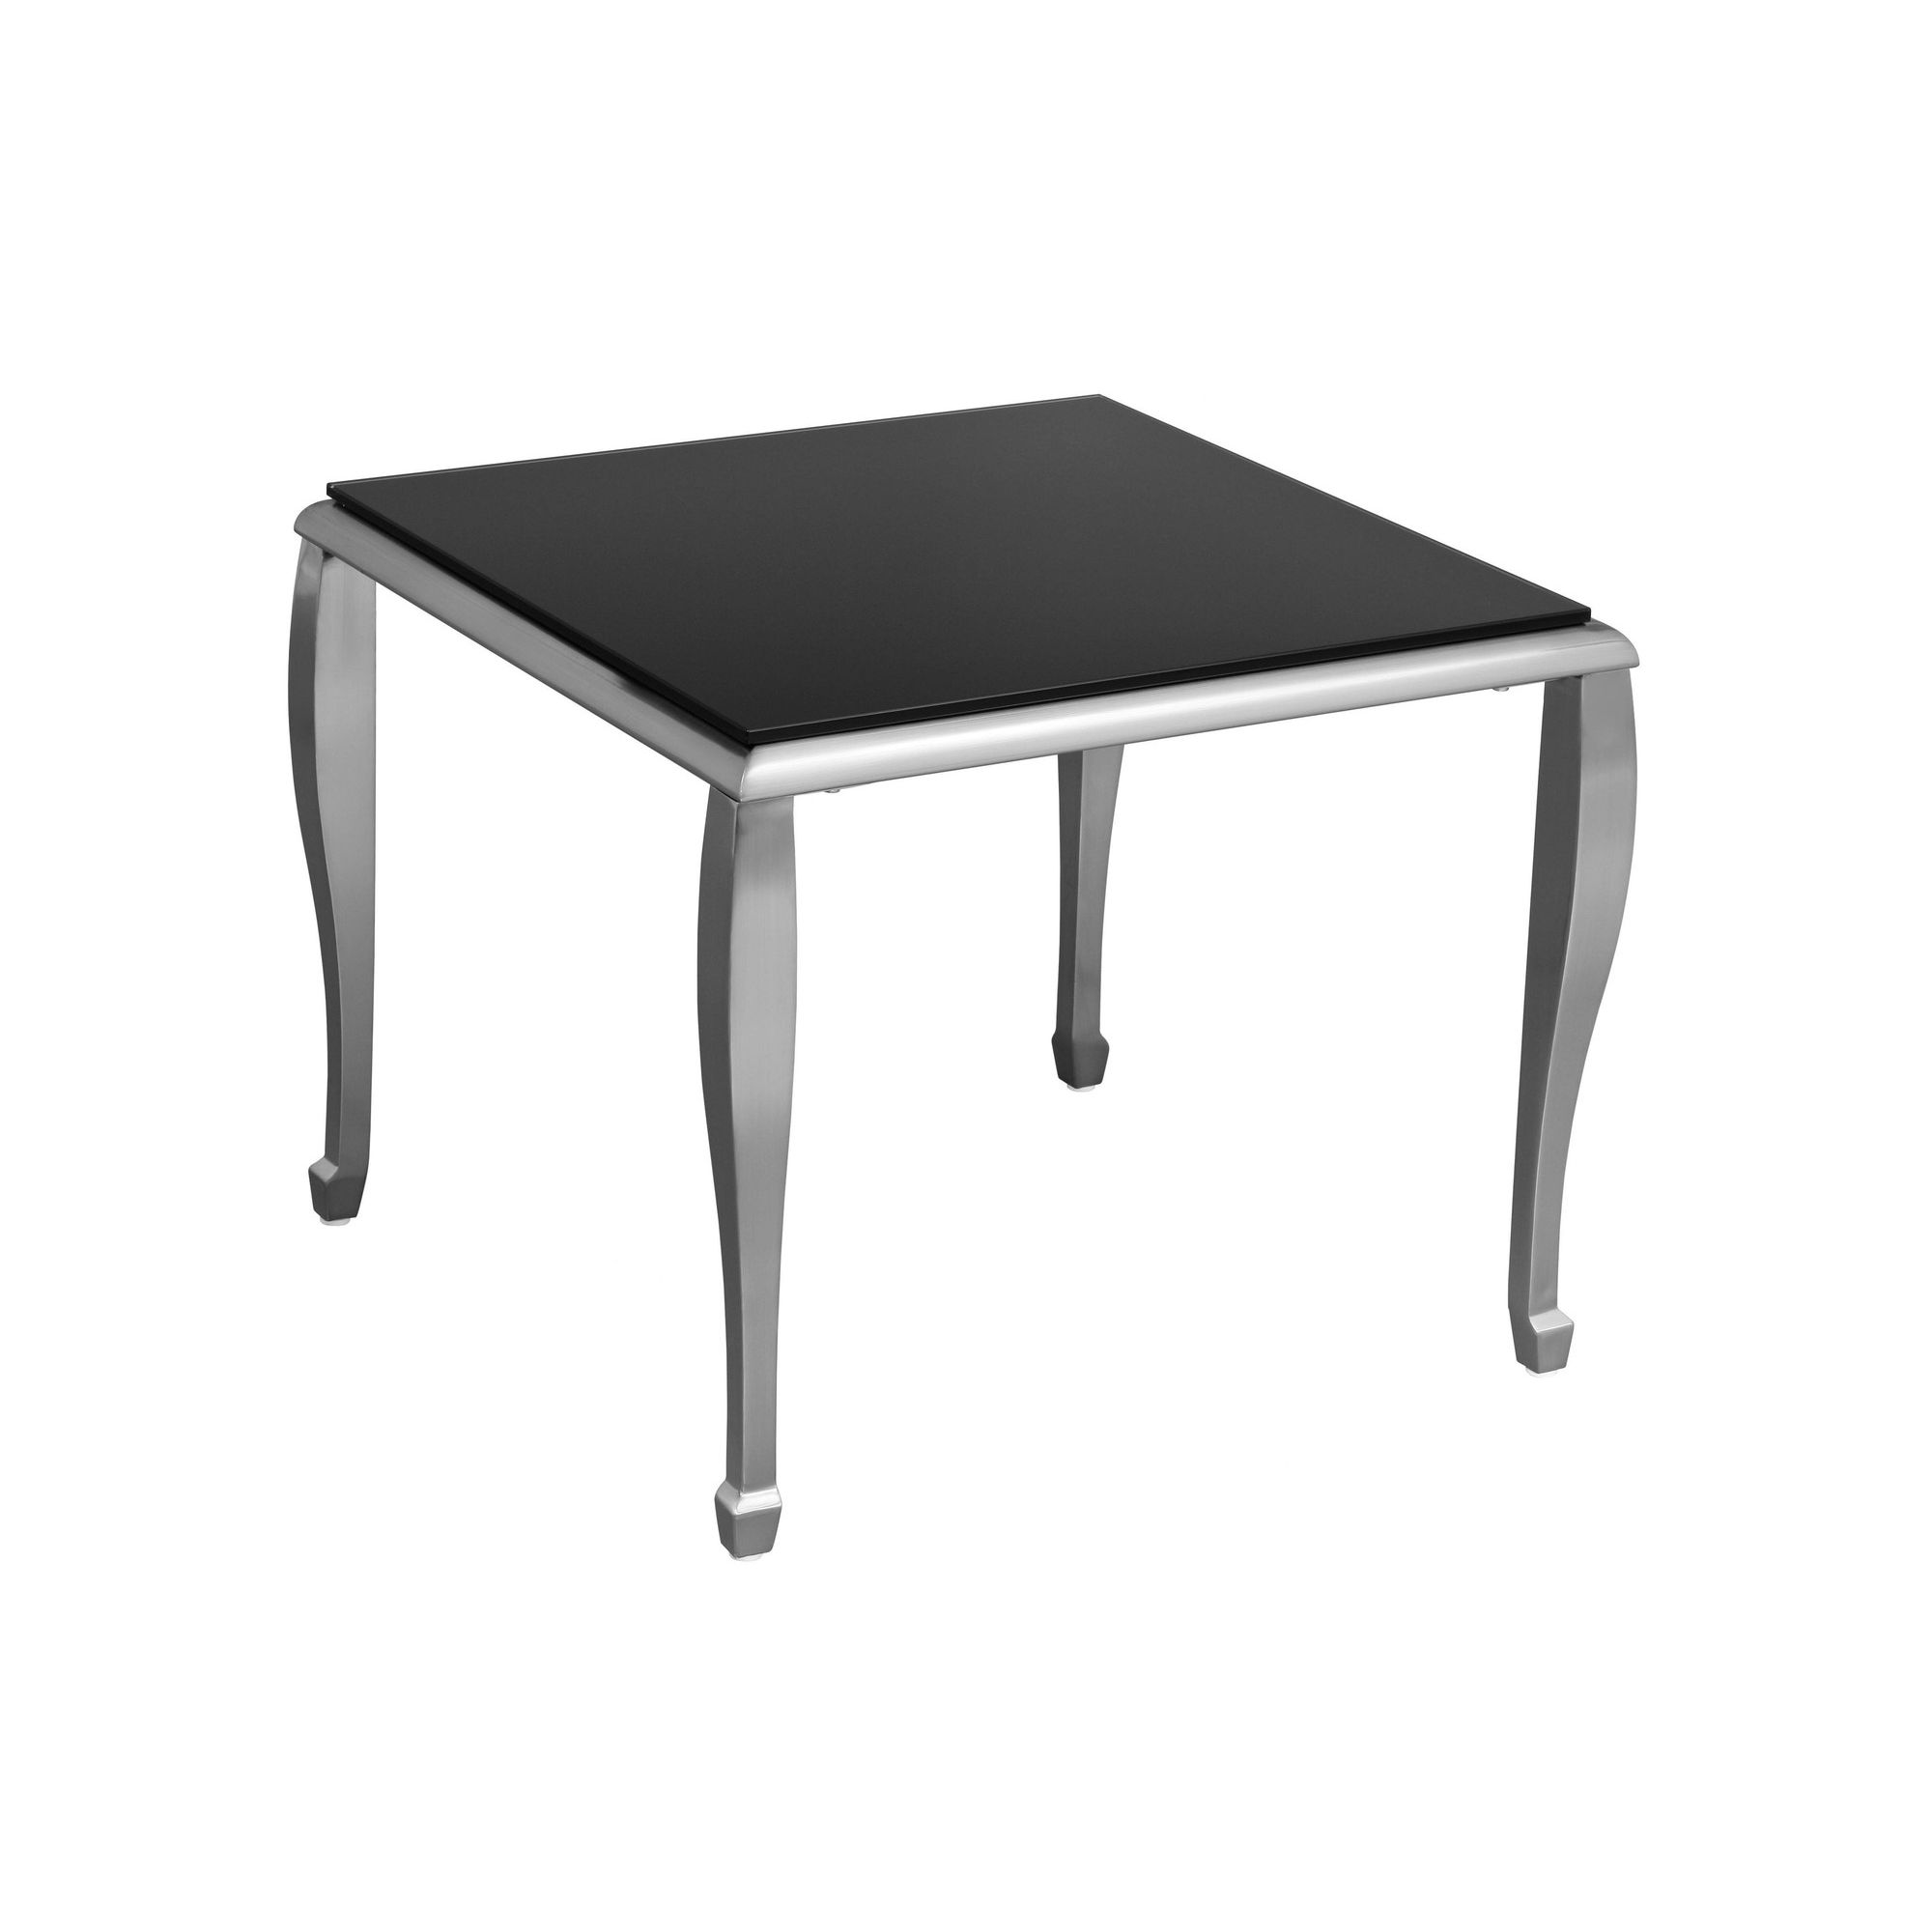 Premier Housewares End Table with Nickel Plated Legs at Tesco Direct